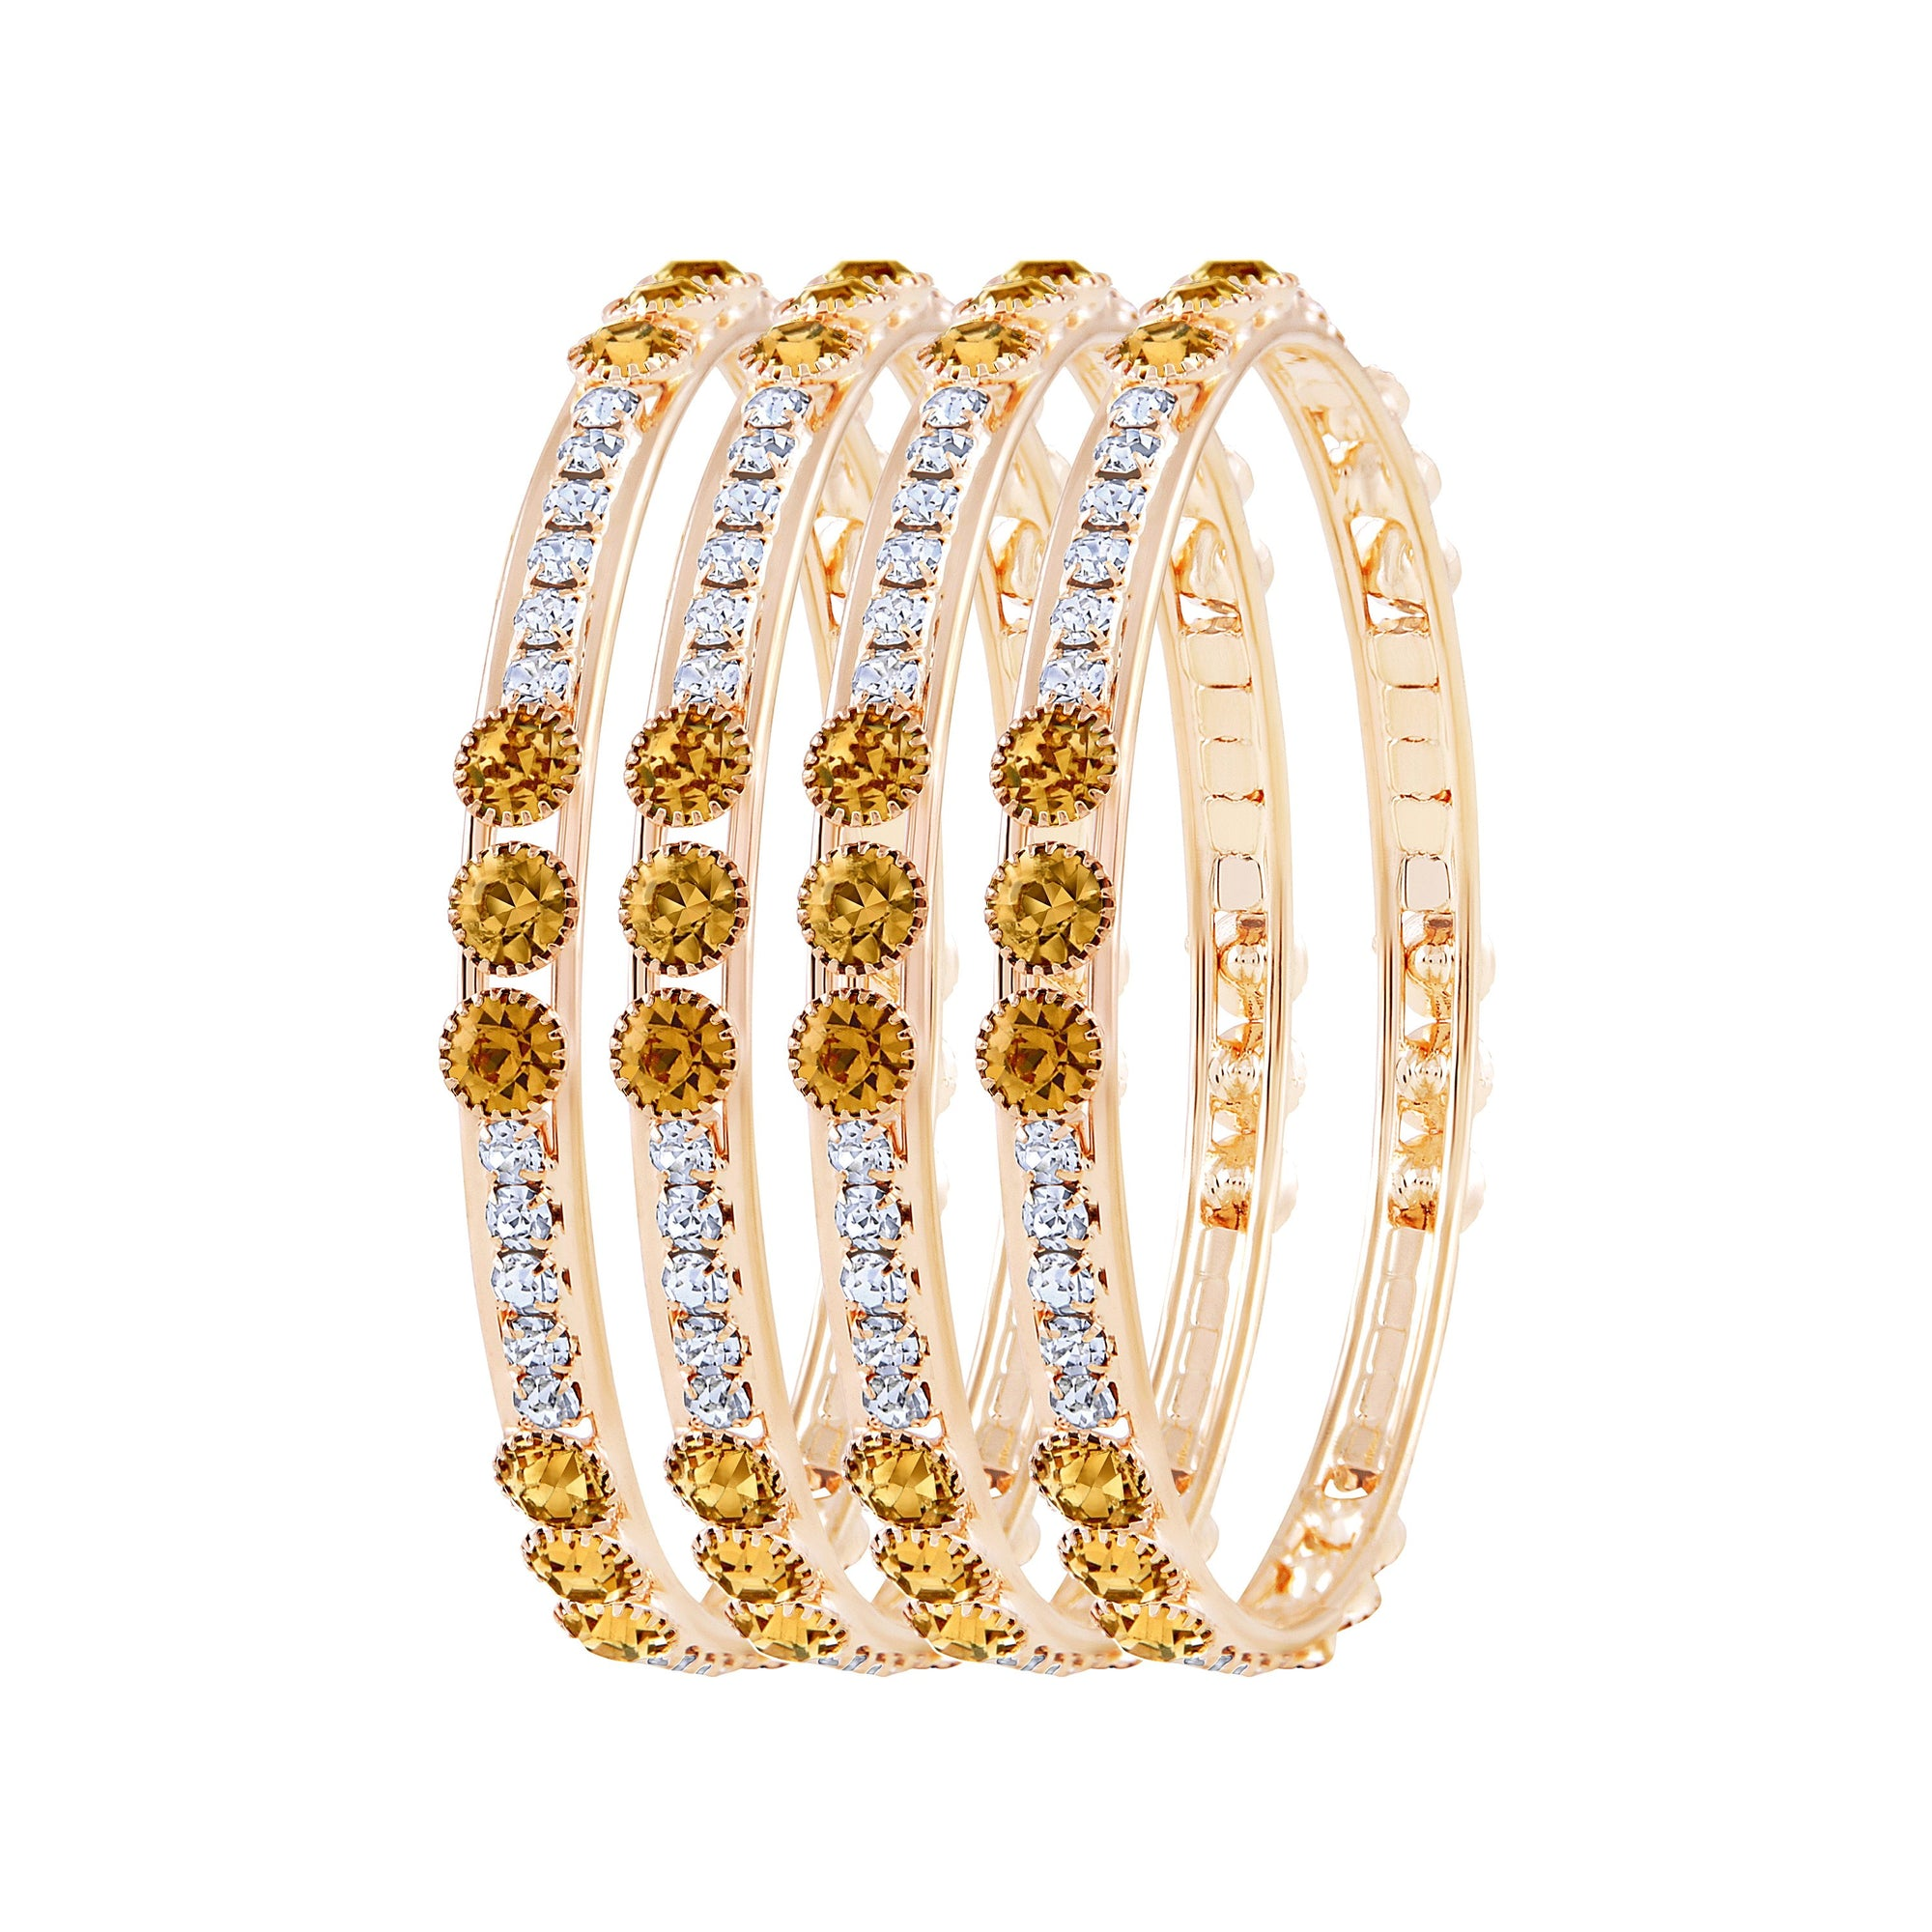 Asmitta Jewellery Gold Set Of 4 Bangles  -BG124